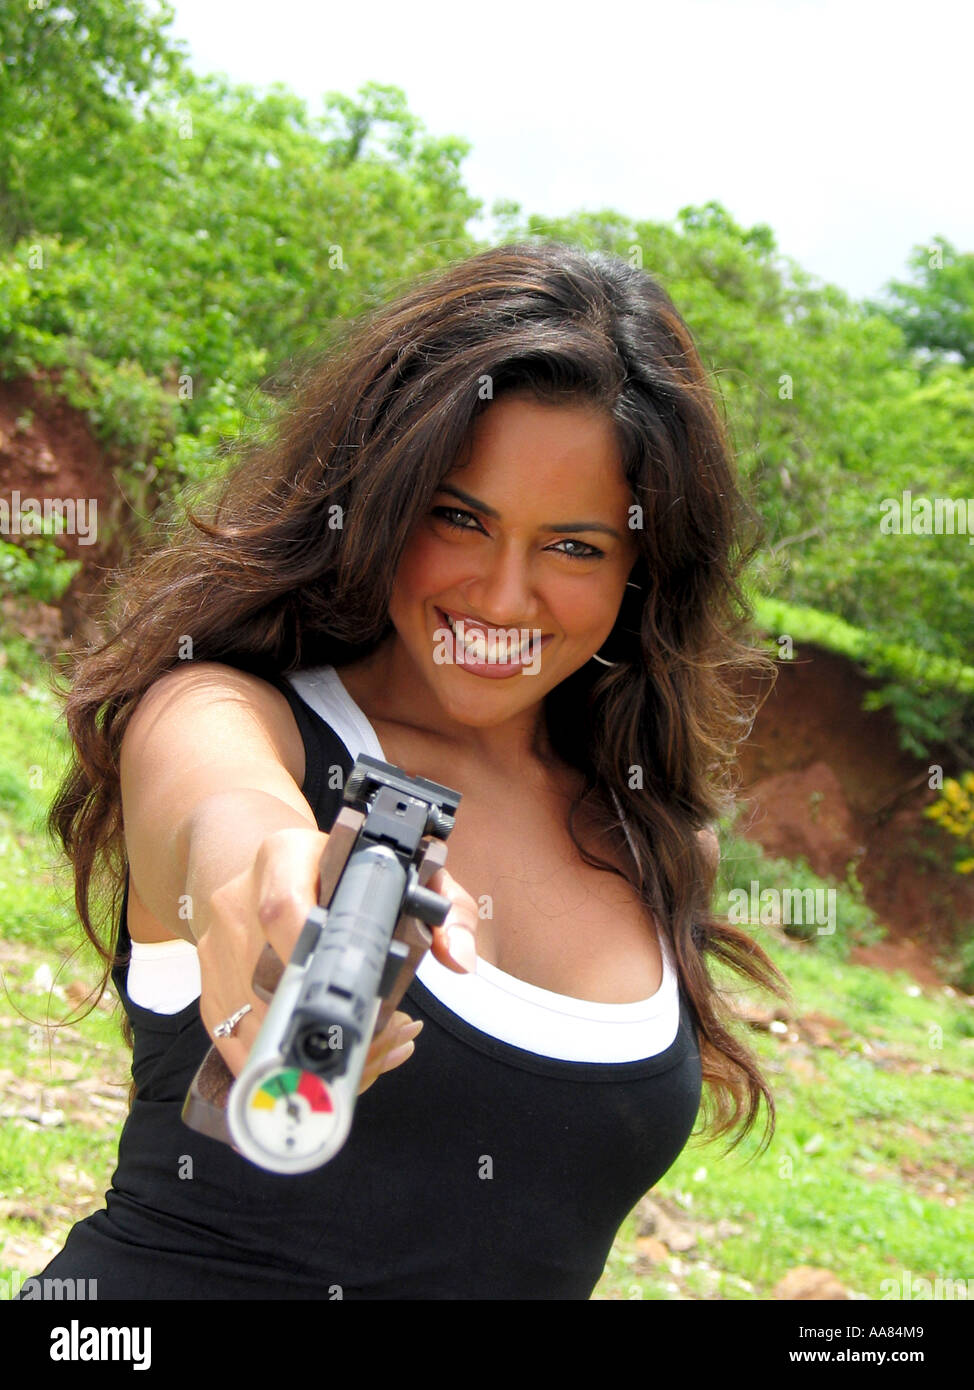 sameera reddy is a former indian actress who primarily starred in